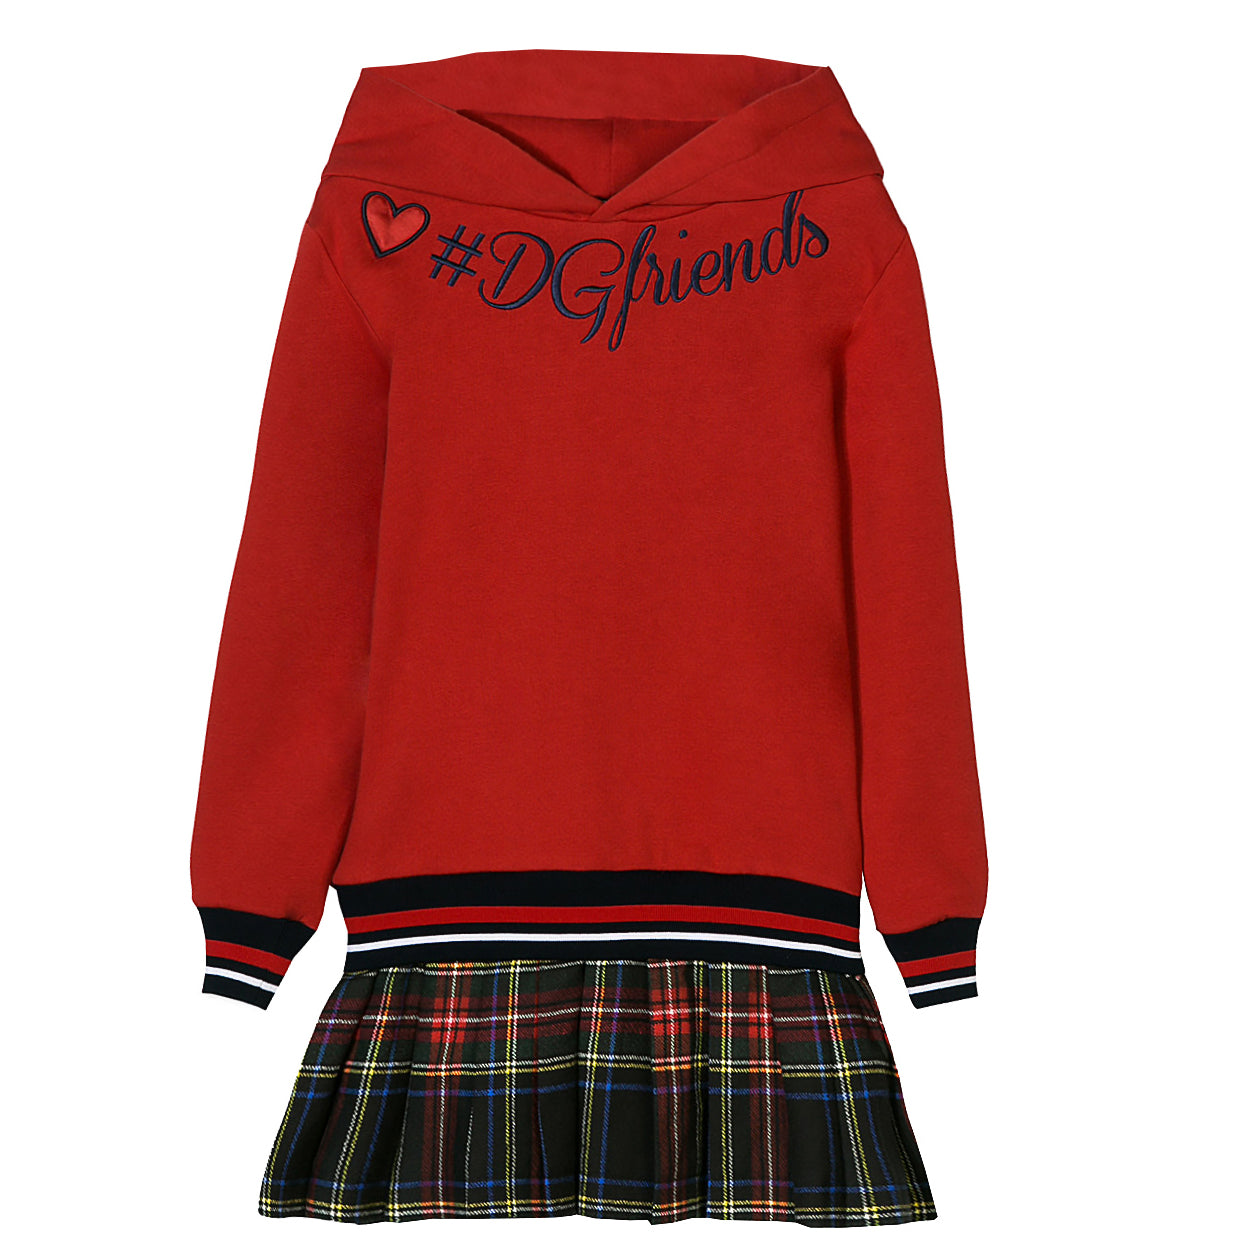 Kids-Girls Back to School Long Sleeve Dress-Red and Black